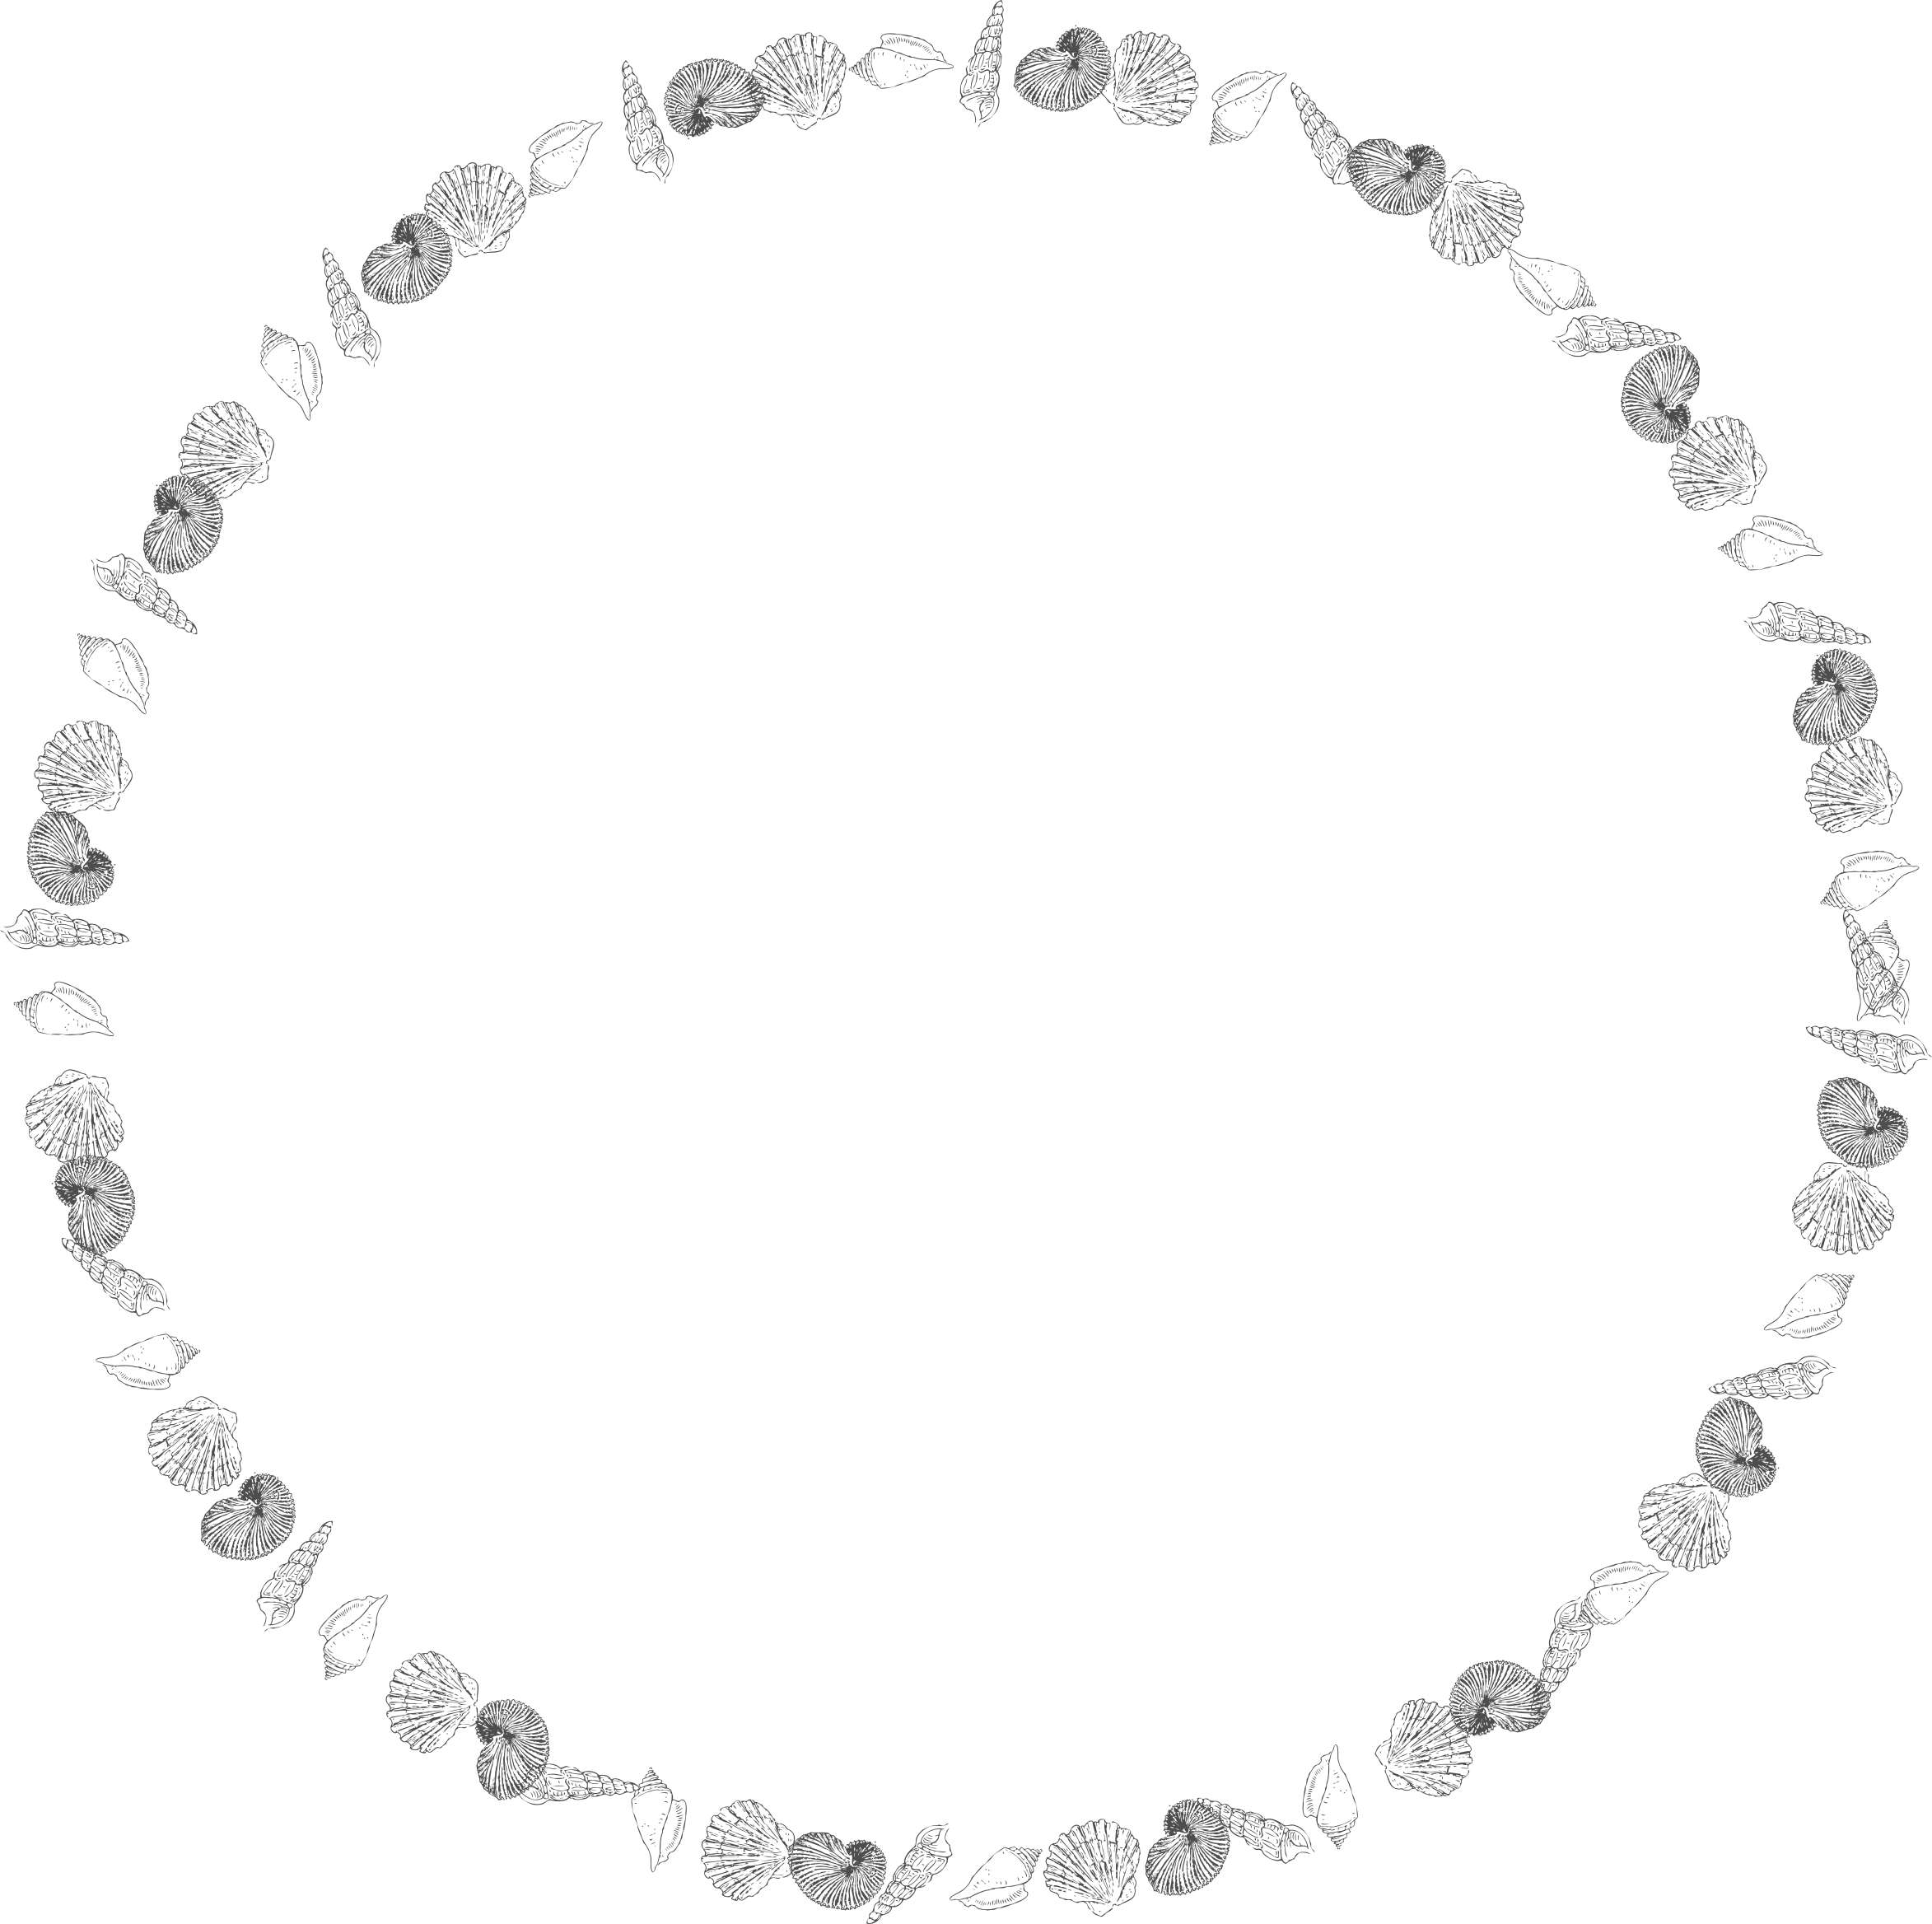 Clipart round shells big. White circle frame png